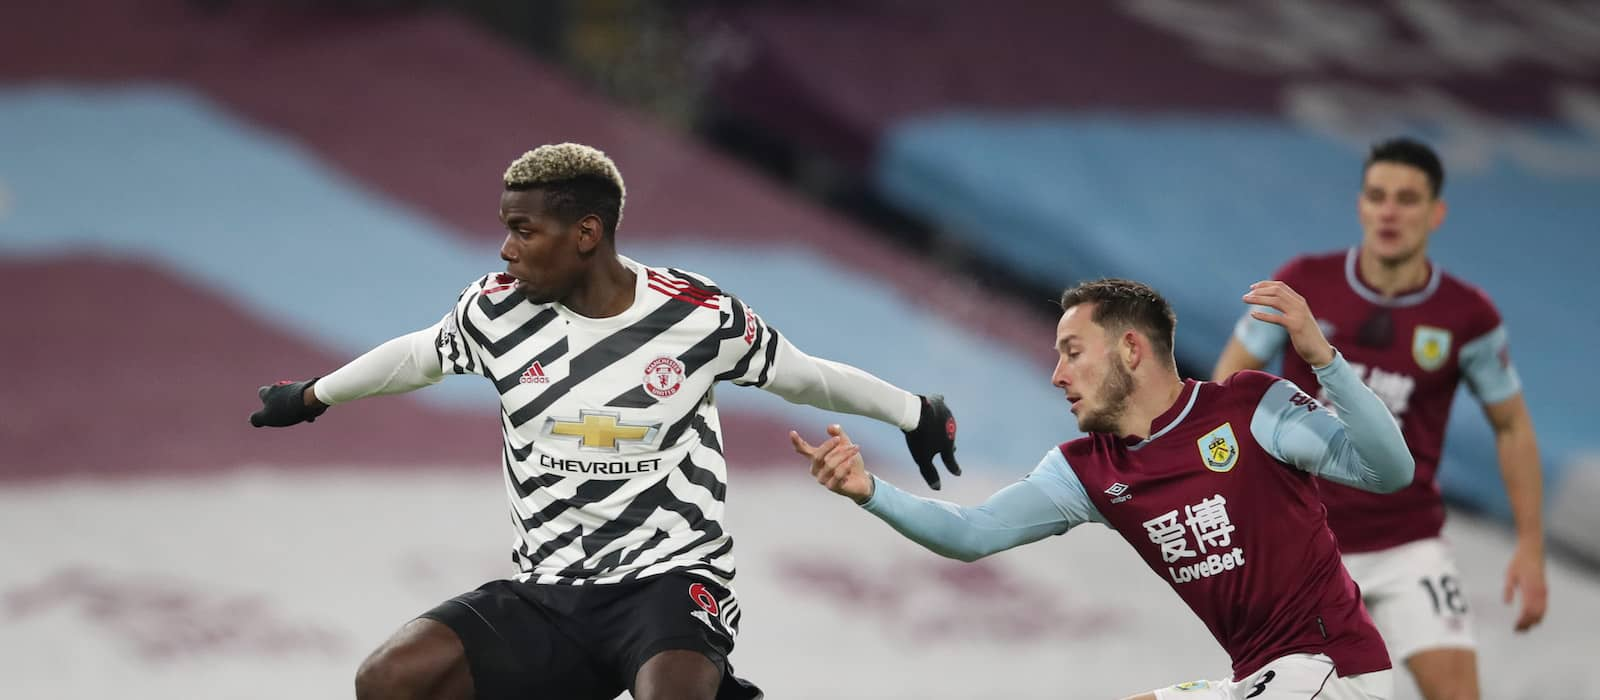 Manchester United fans react to Paul Pogba's performance vs Burnley